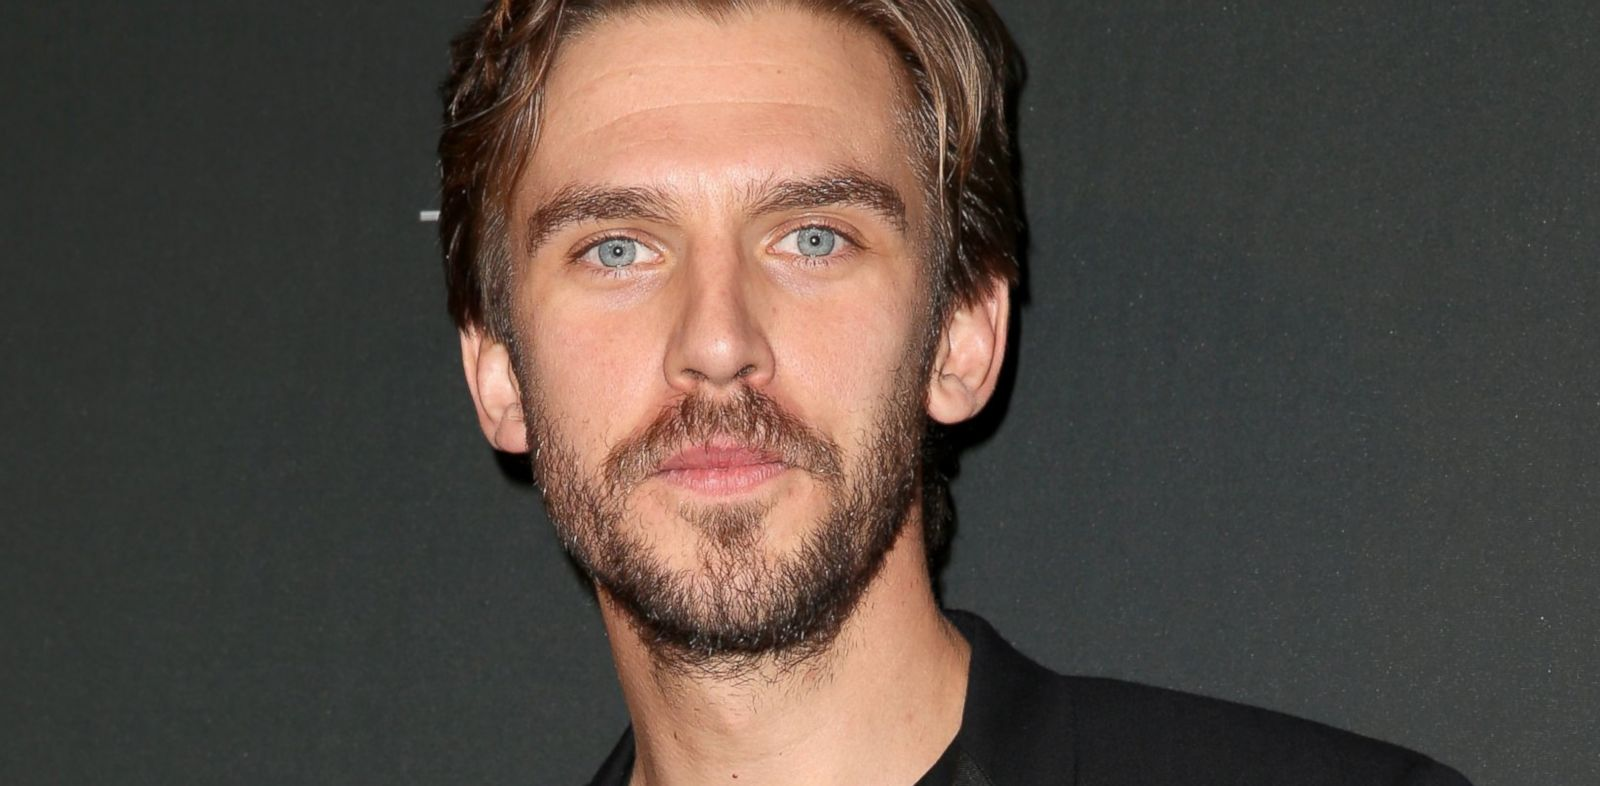 PHOTO: Actor Dan Stevens attends the BAFTA LA 2014 Awards Season Tea Party at the Four Seasons Hotel Los Angeles at Beverly Hills, Jan 11, 2014 in Beverly Hills, Calif.